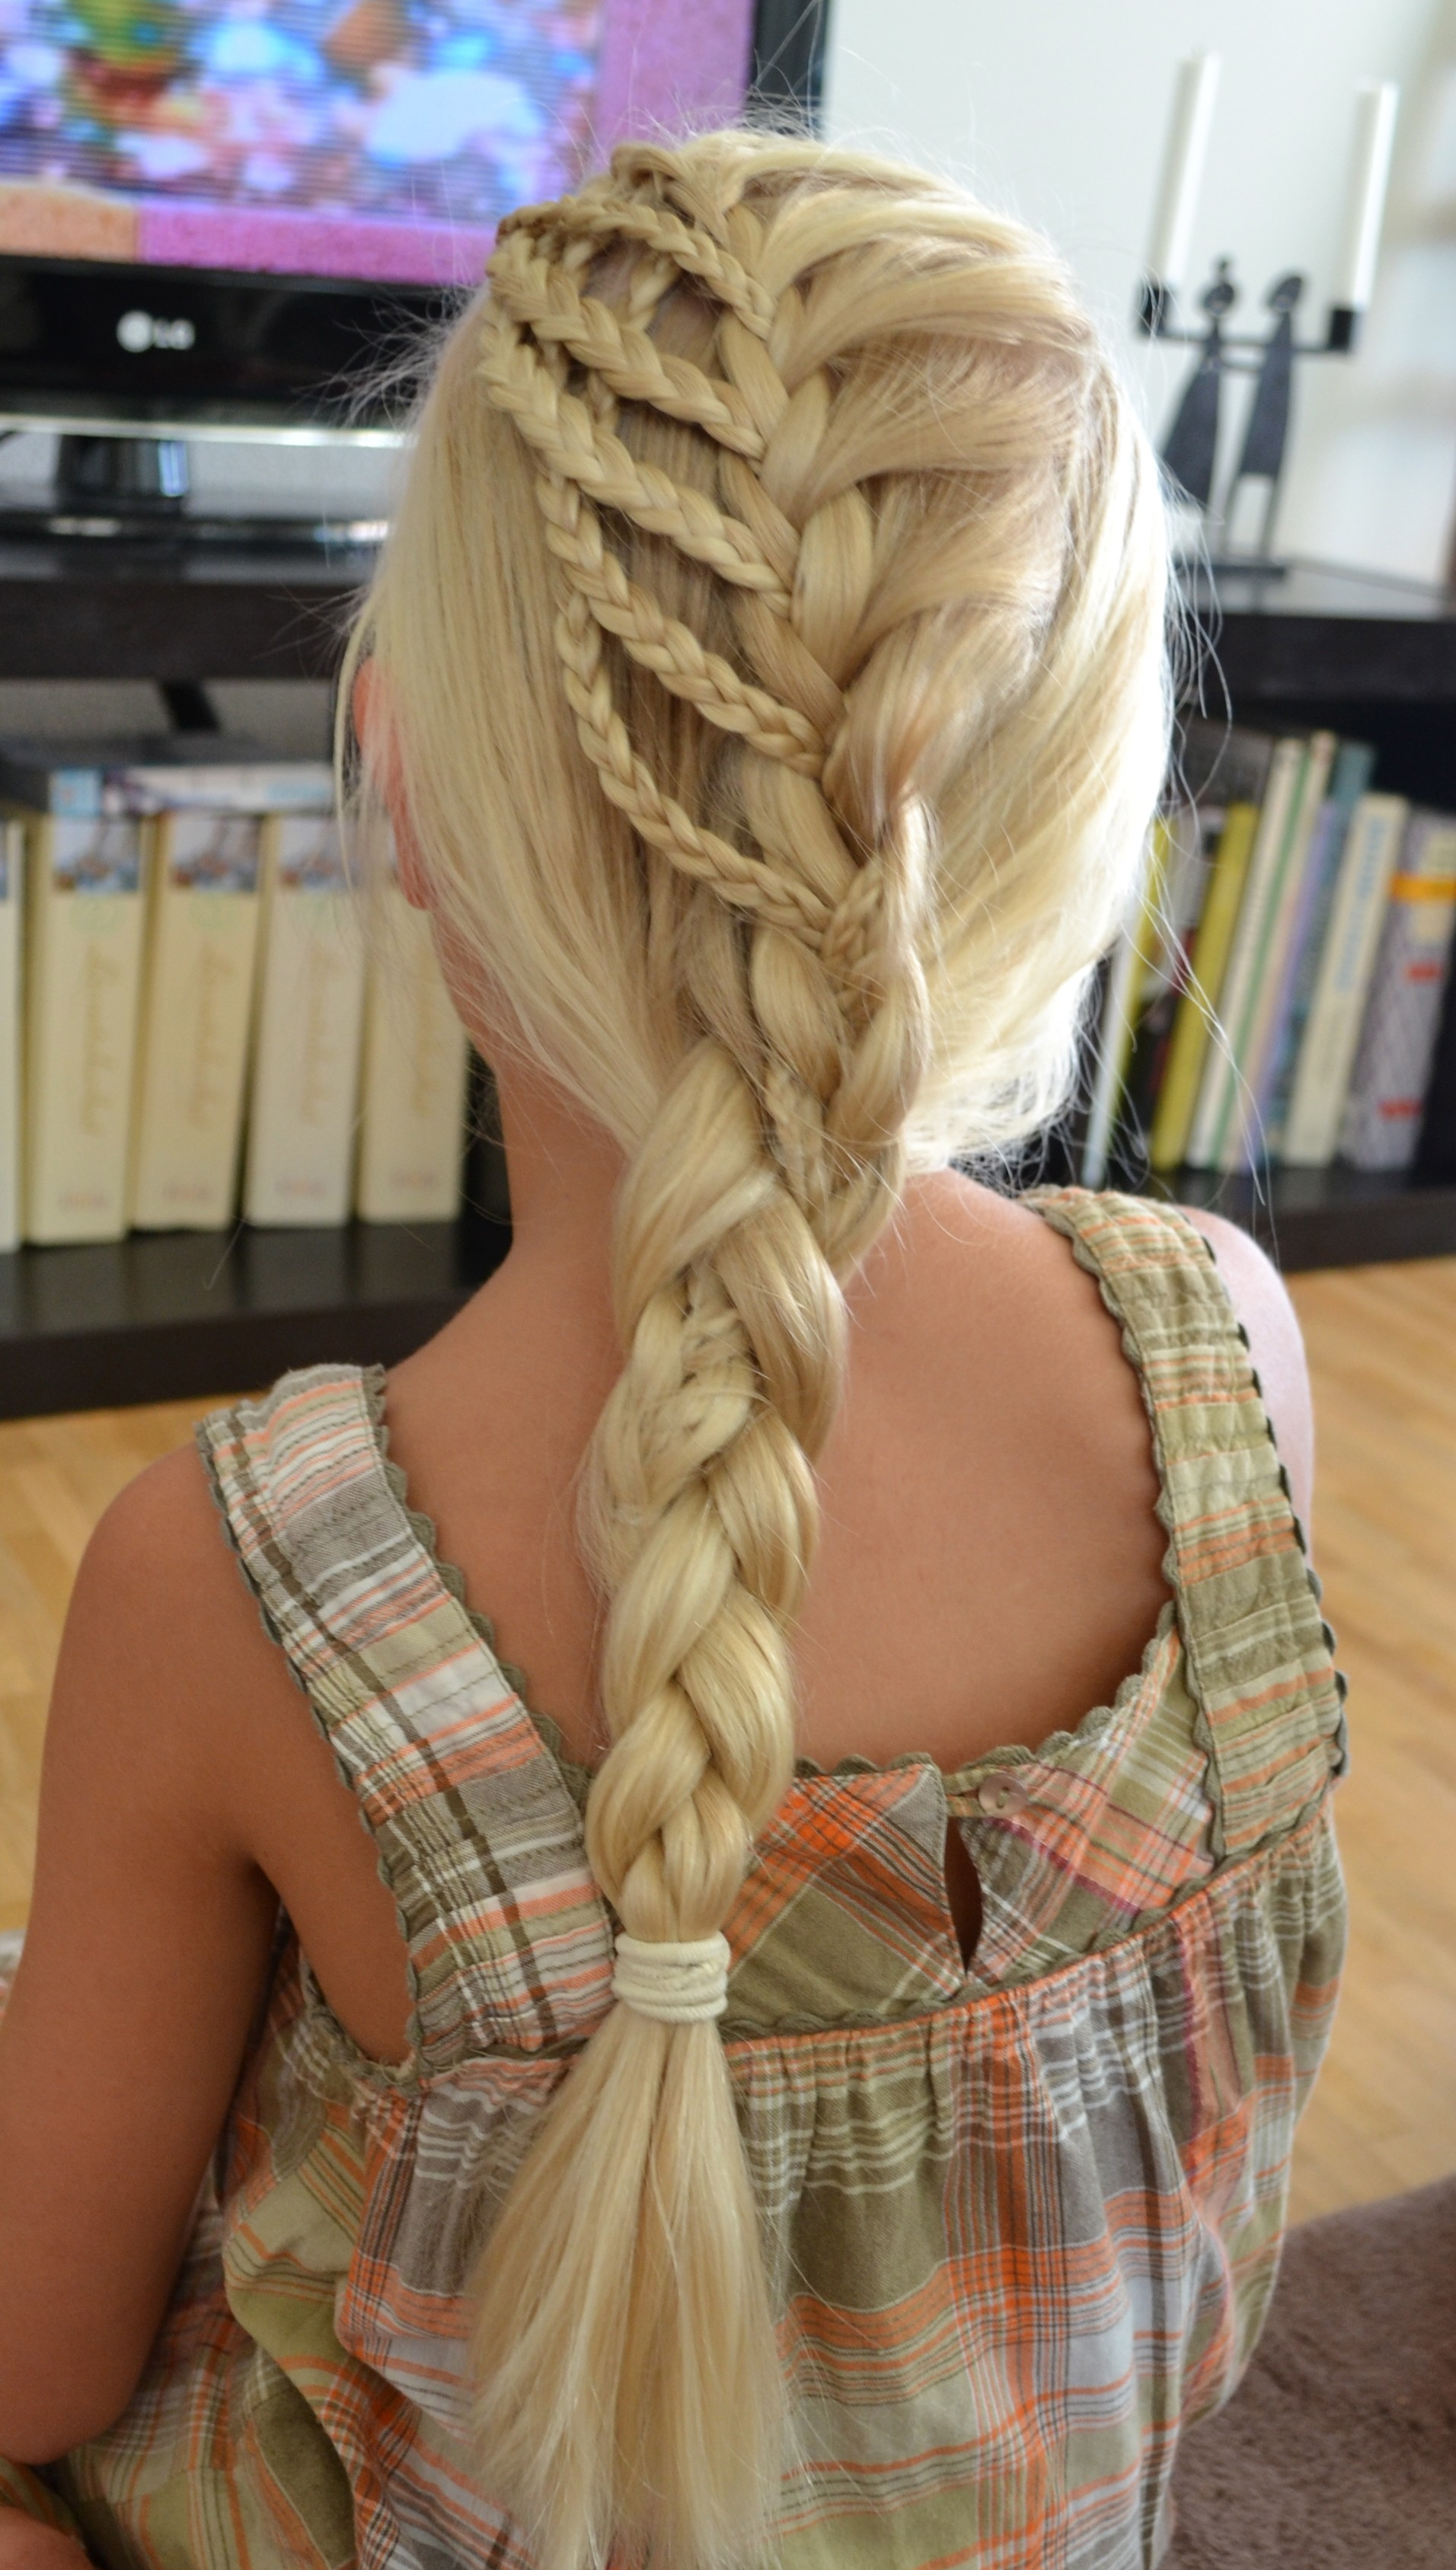 waterfall into little braids tied back